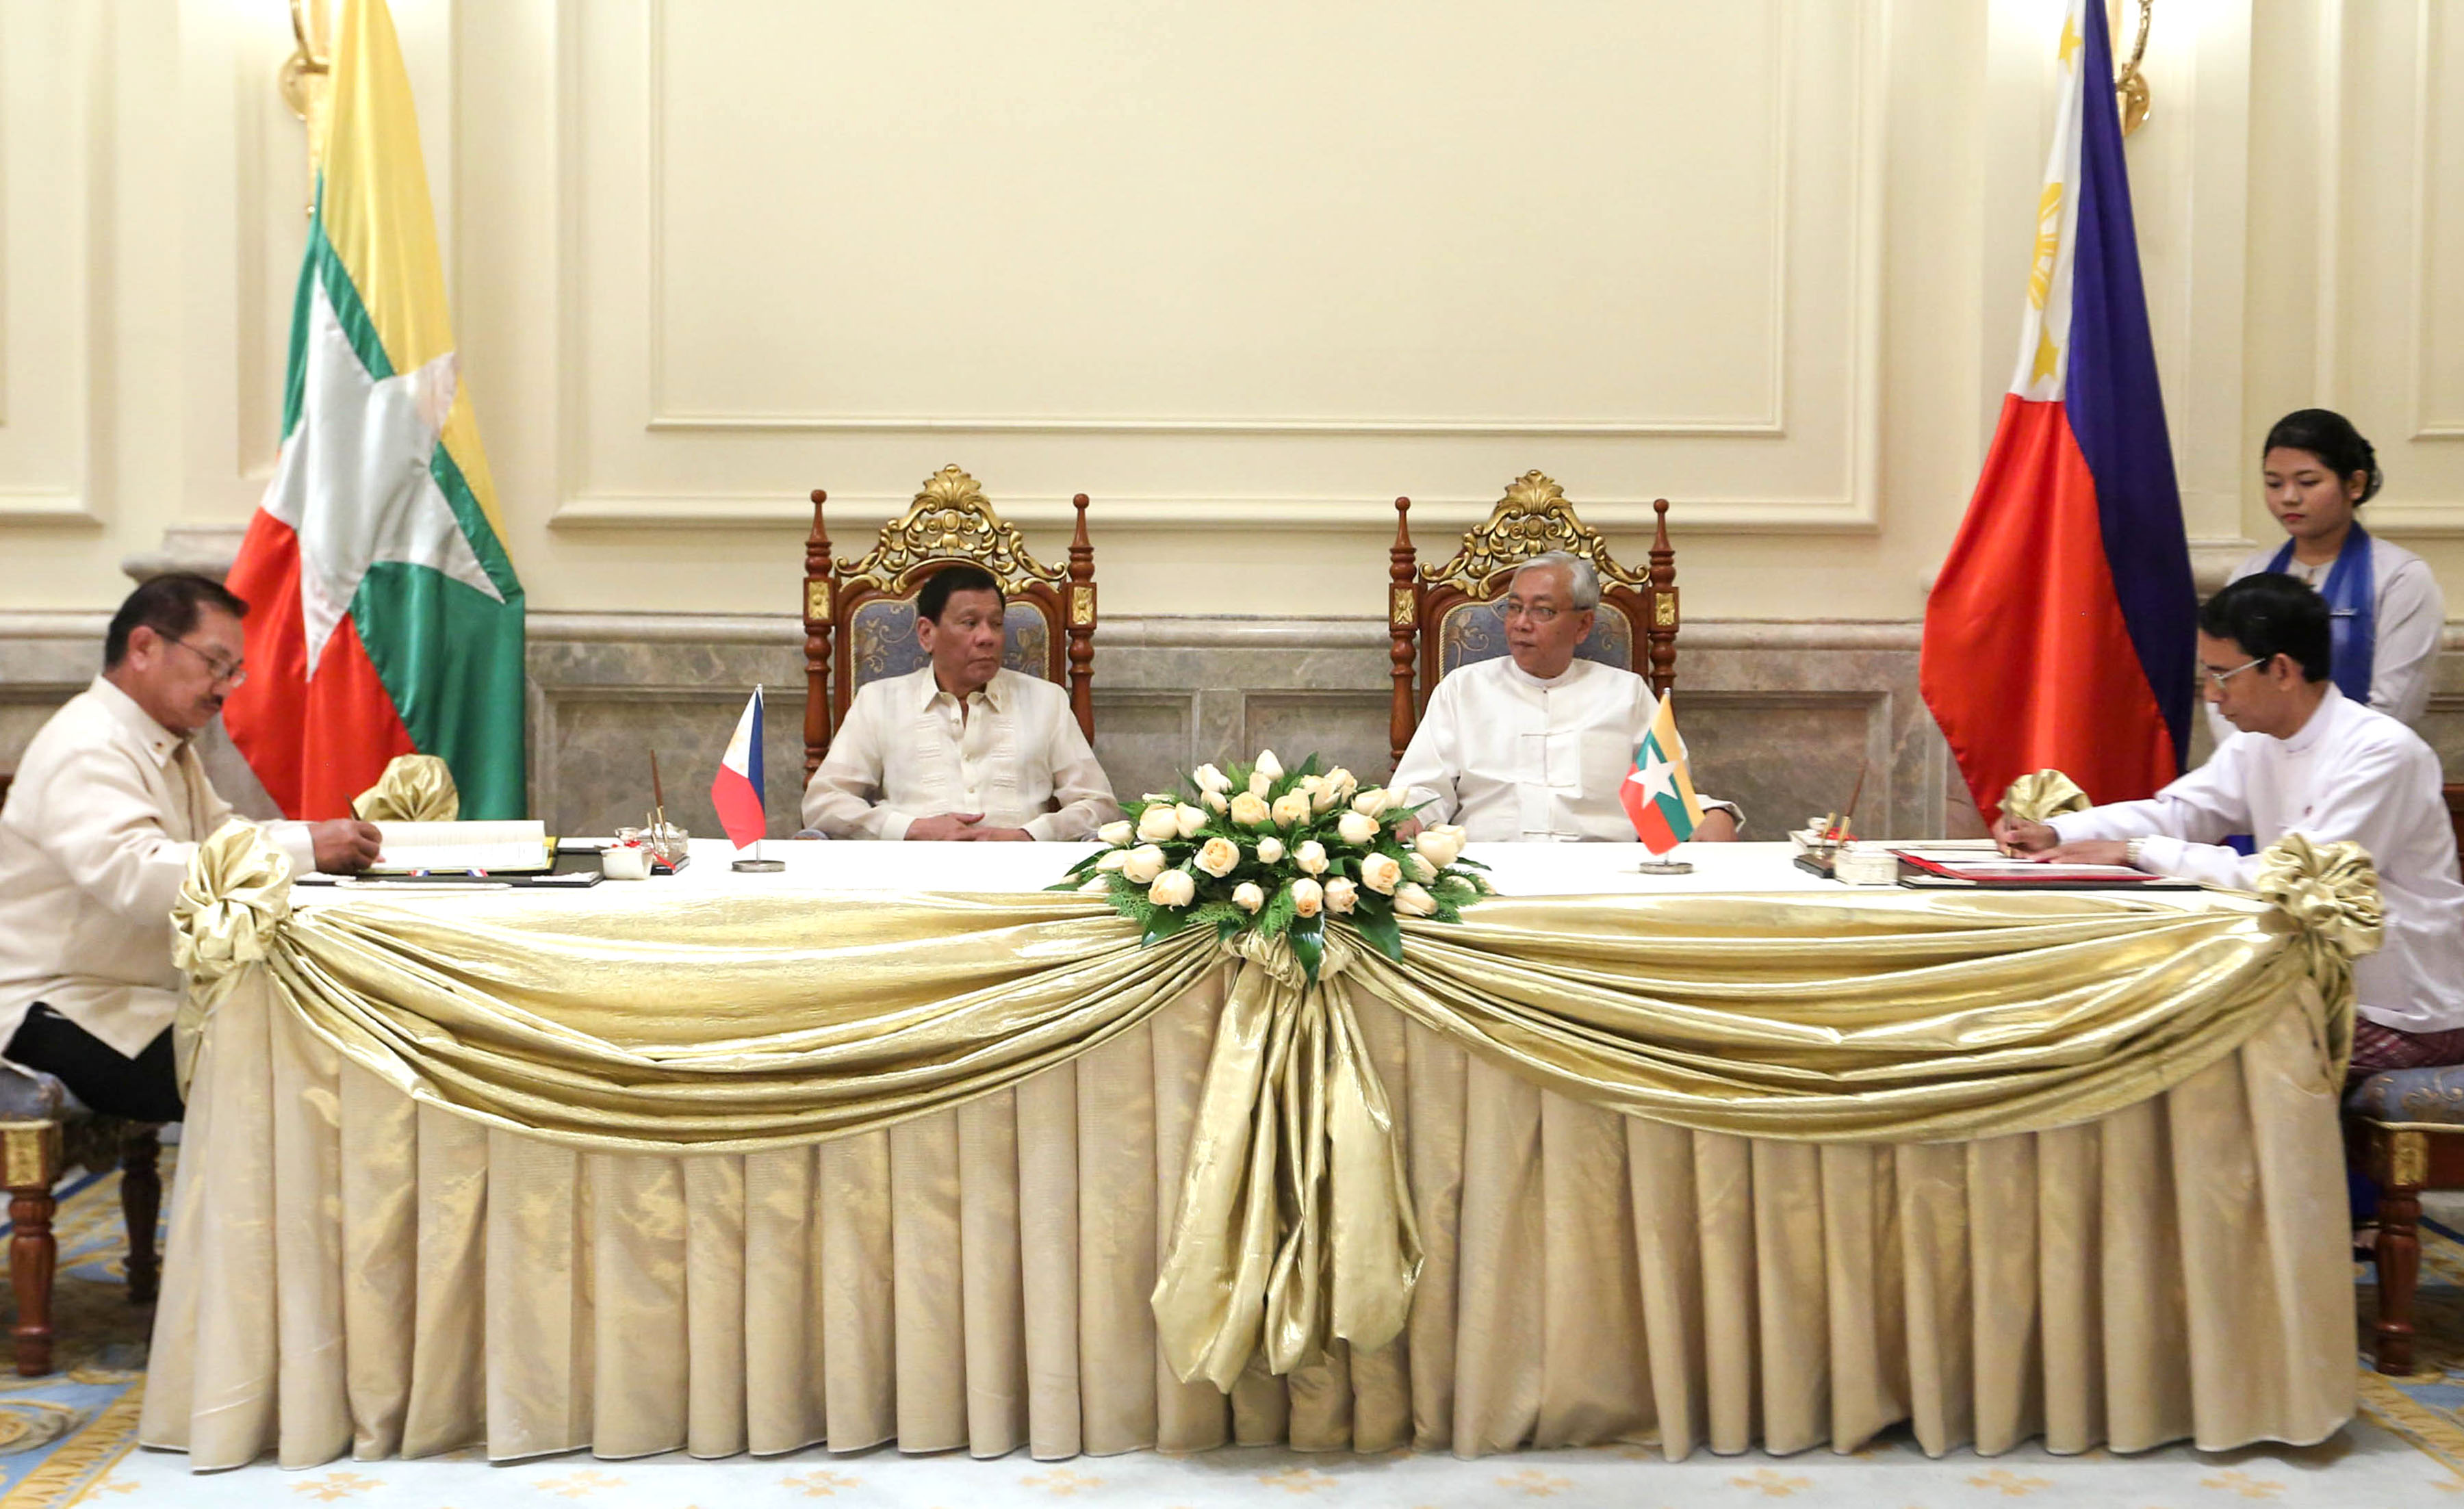 President Rodrigo Roa Duterte and Myanmar President U Htin Kiaw witness the signing of Memorandum of Understanding (MOU) between Agriculture Secretary Emmanuel Piñol and Myanmar Minister of Agricultural, Livestock and Irrigation Dr. Aung Thu during a ceremony at the Presidential Palace in Nay Pyi Taw, Myanmar on March 20, 2017. The MOU is intended to strengthen both countries' food security and agriculture cooperation. (Photo by Toto Lozano)(PPD Malacanang)